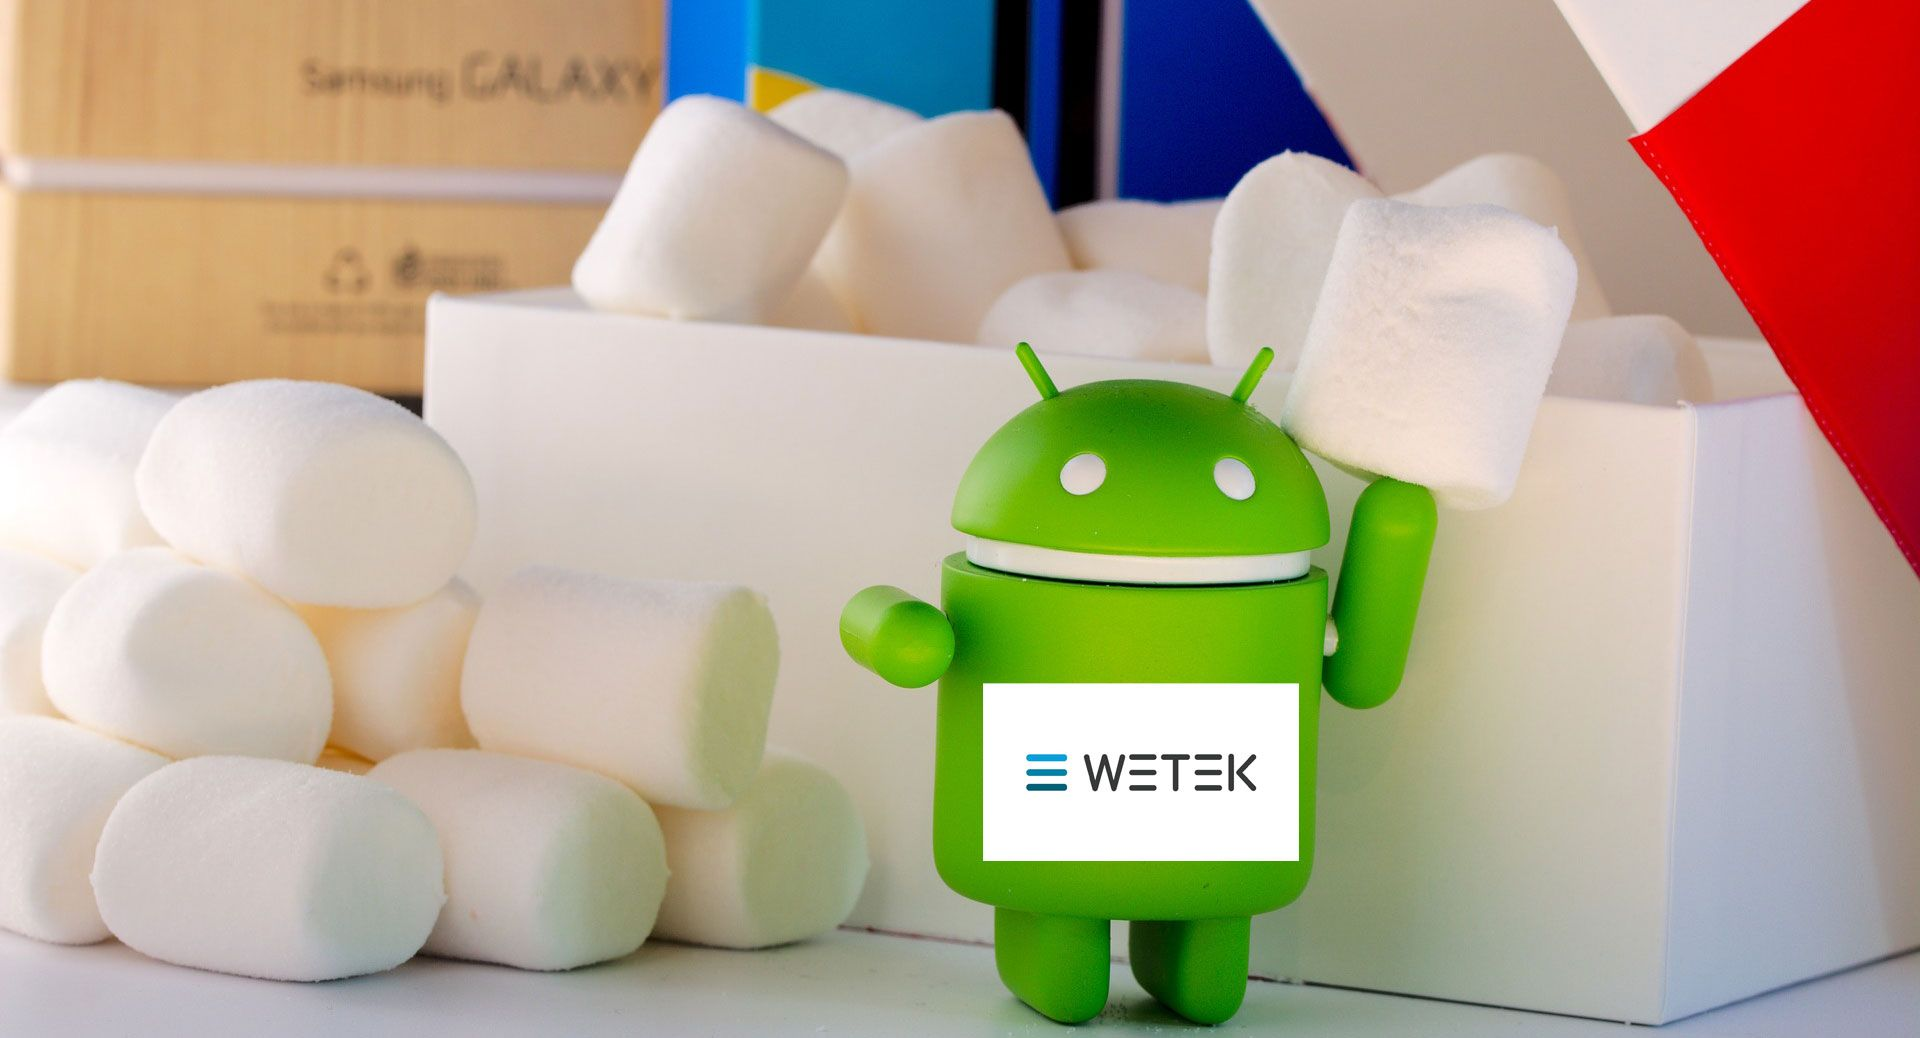 WeOS 3.1 Update Android 6.0 Marshmallow comes to WeTek